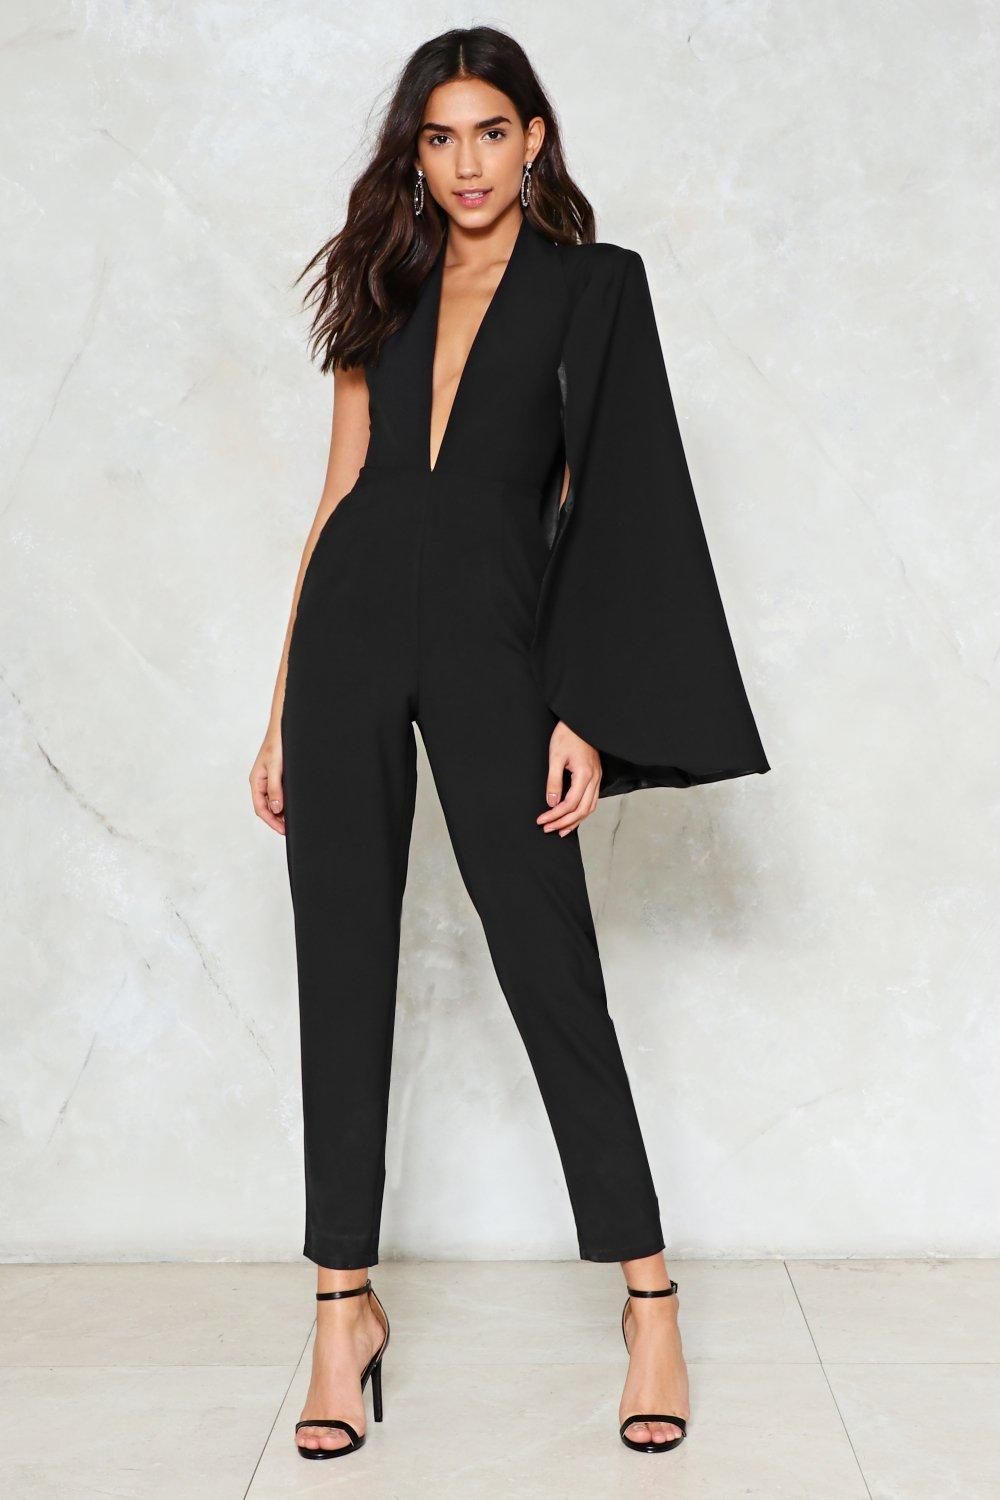 bb085727cec Under Your Wing Jumpsuit | Shop Clothes at Nasty Gal!